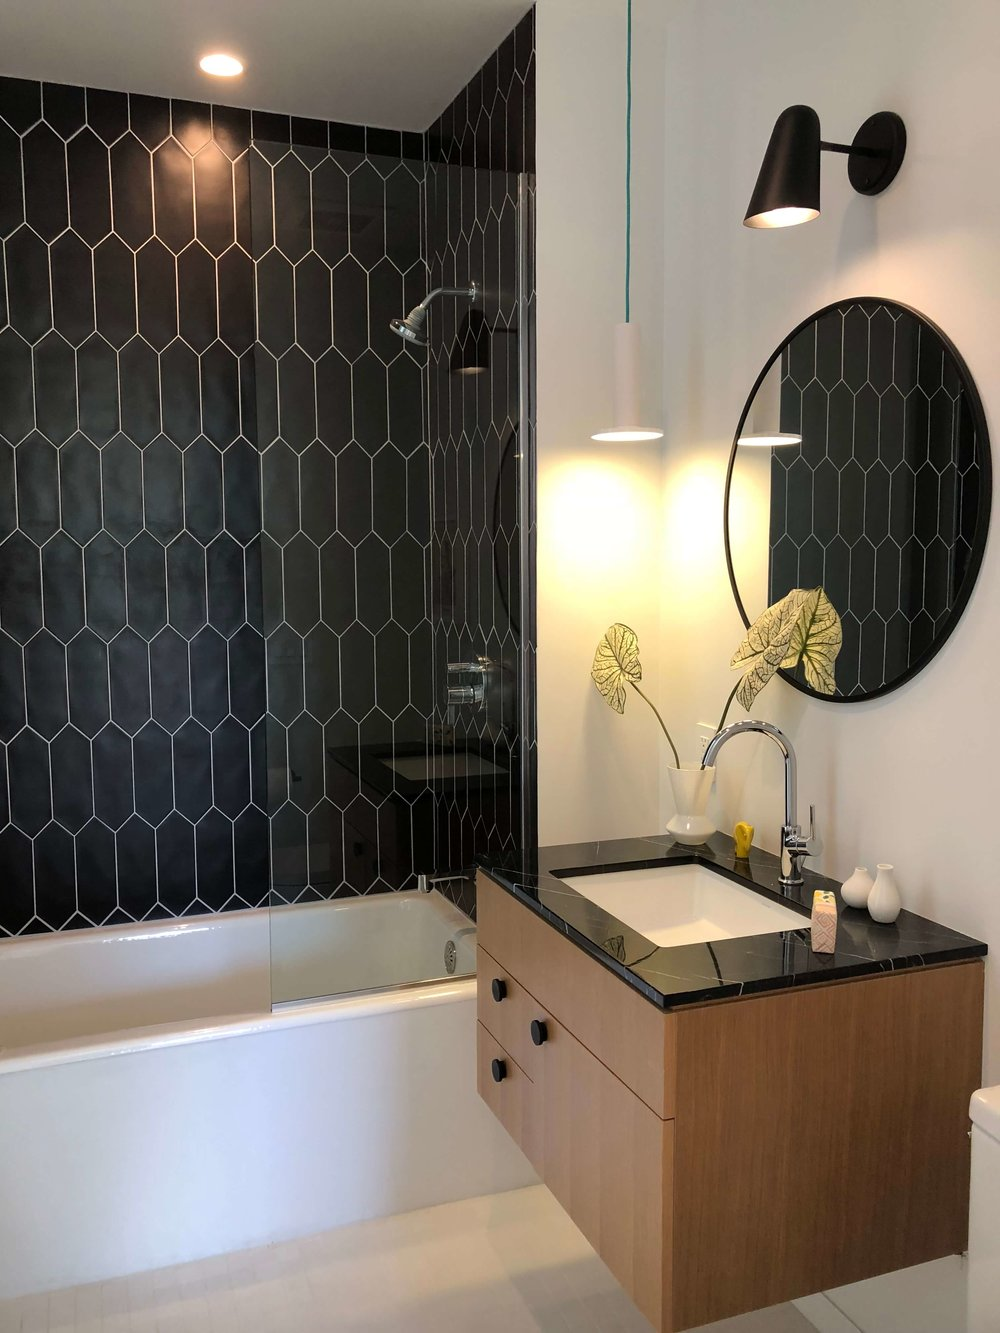 Black and white modern bathroom with floating vanity and round mirror | California home tour